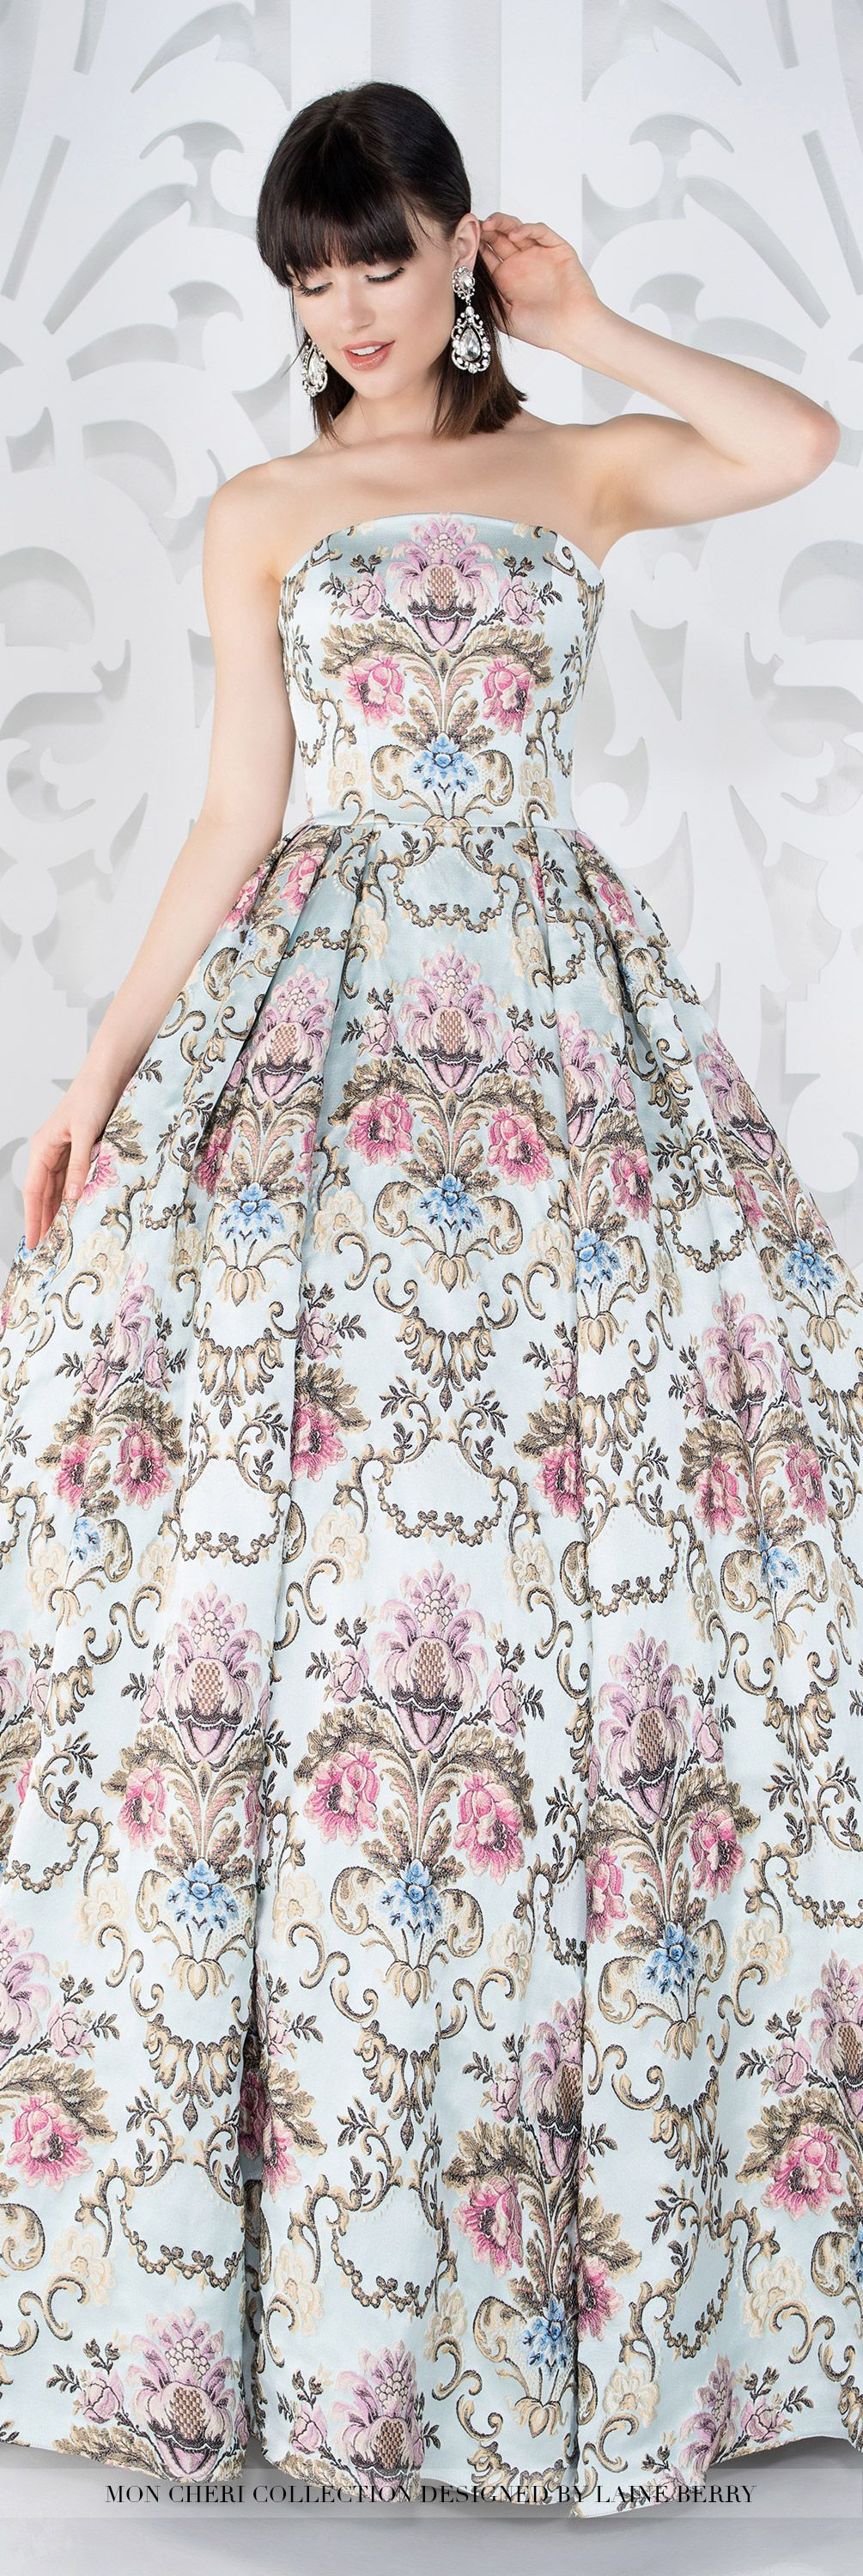 Mon Cheri Collection - Fall 2016 Wedding Gowns - Style No. MCLB21656B Viola - strapless floral ball gown wedding dress with multi-colored French brocade pattern